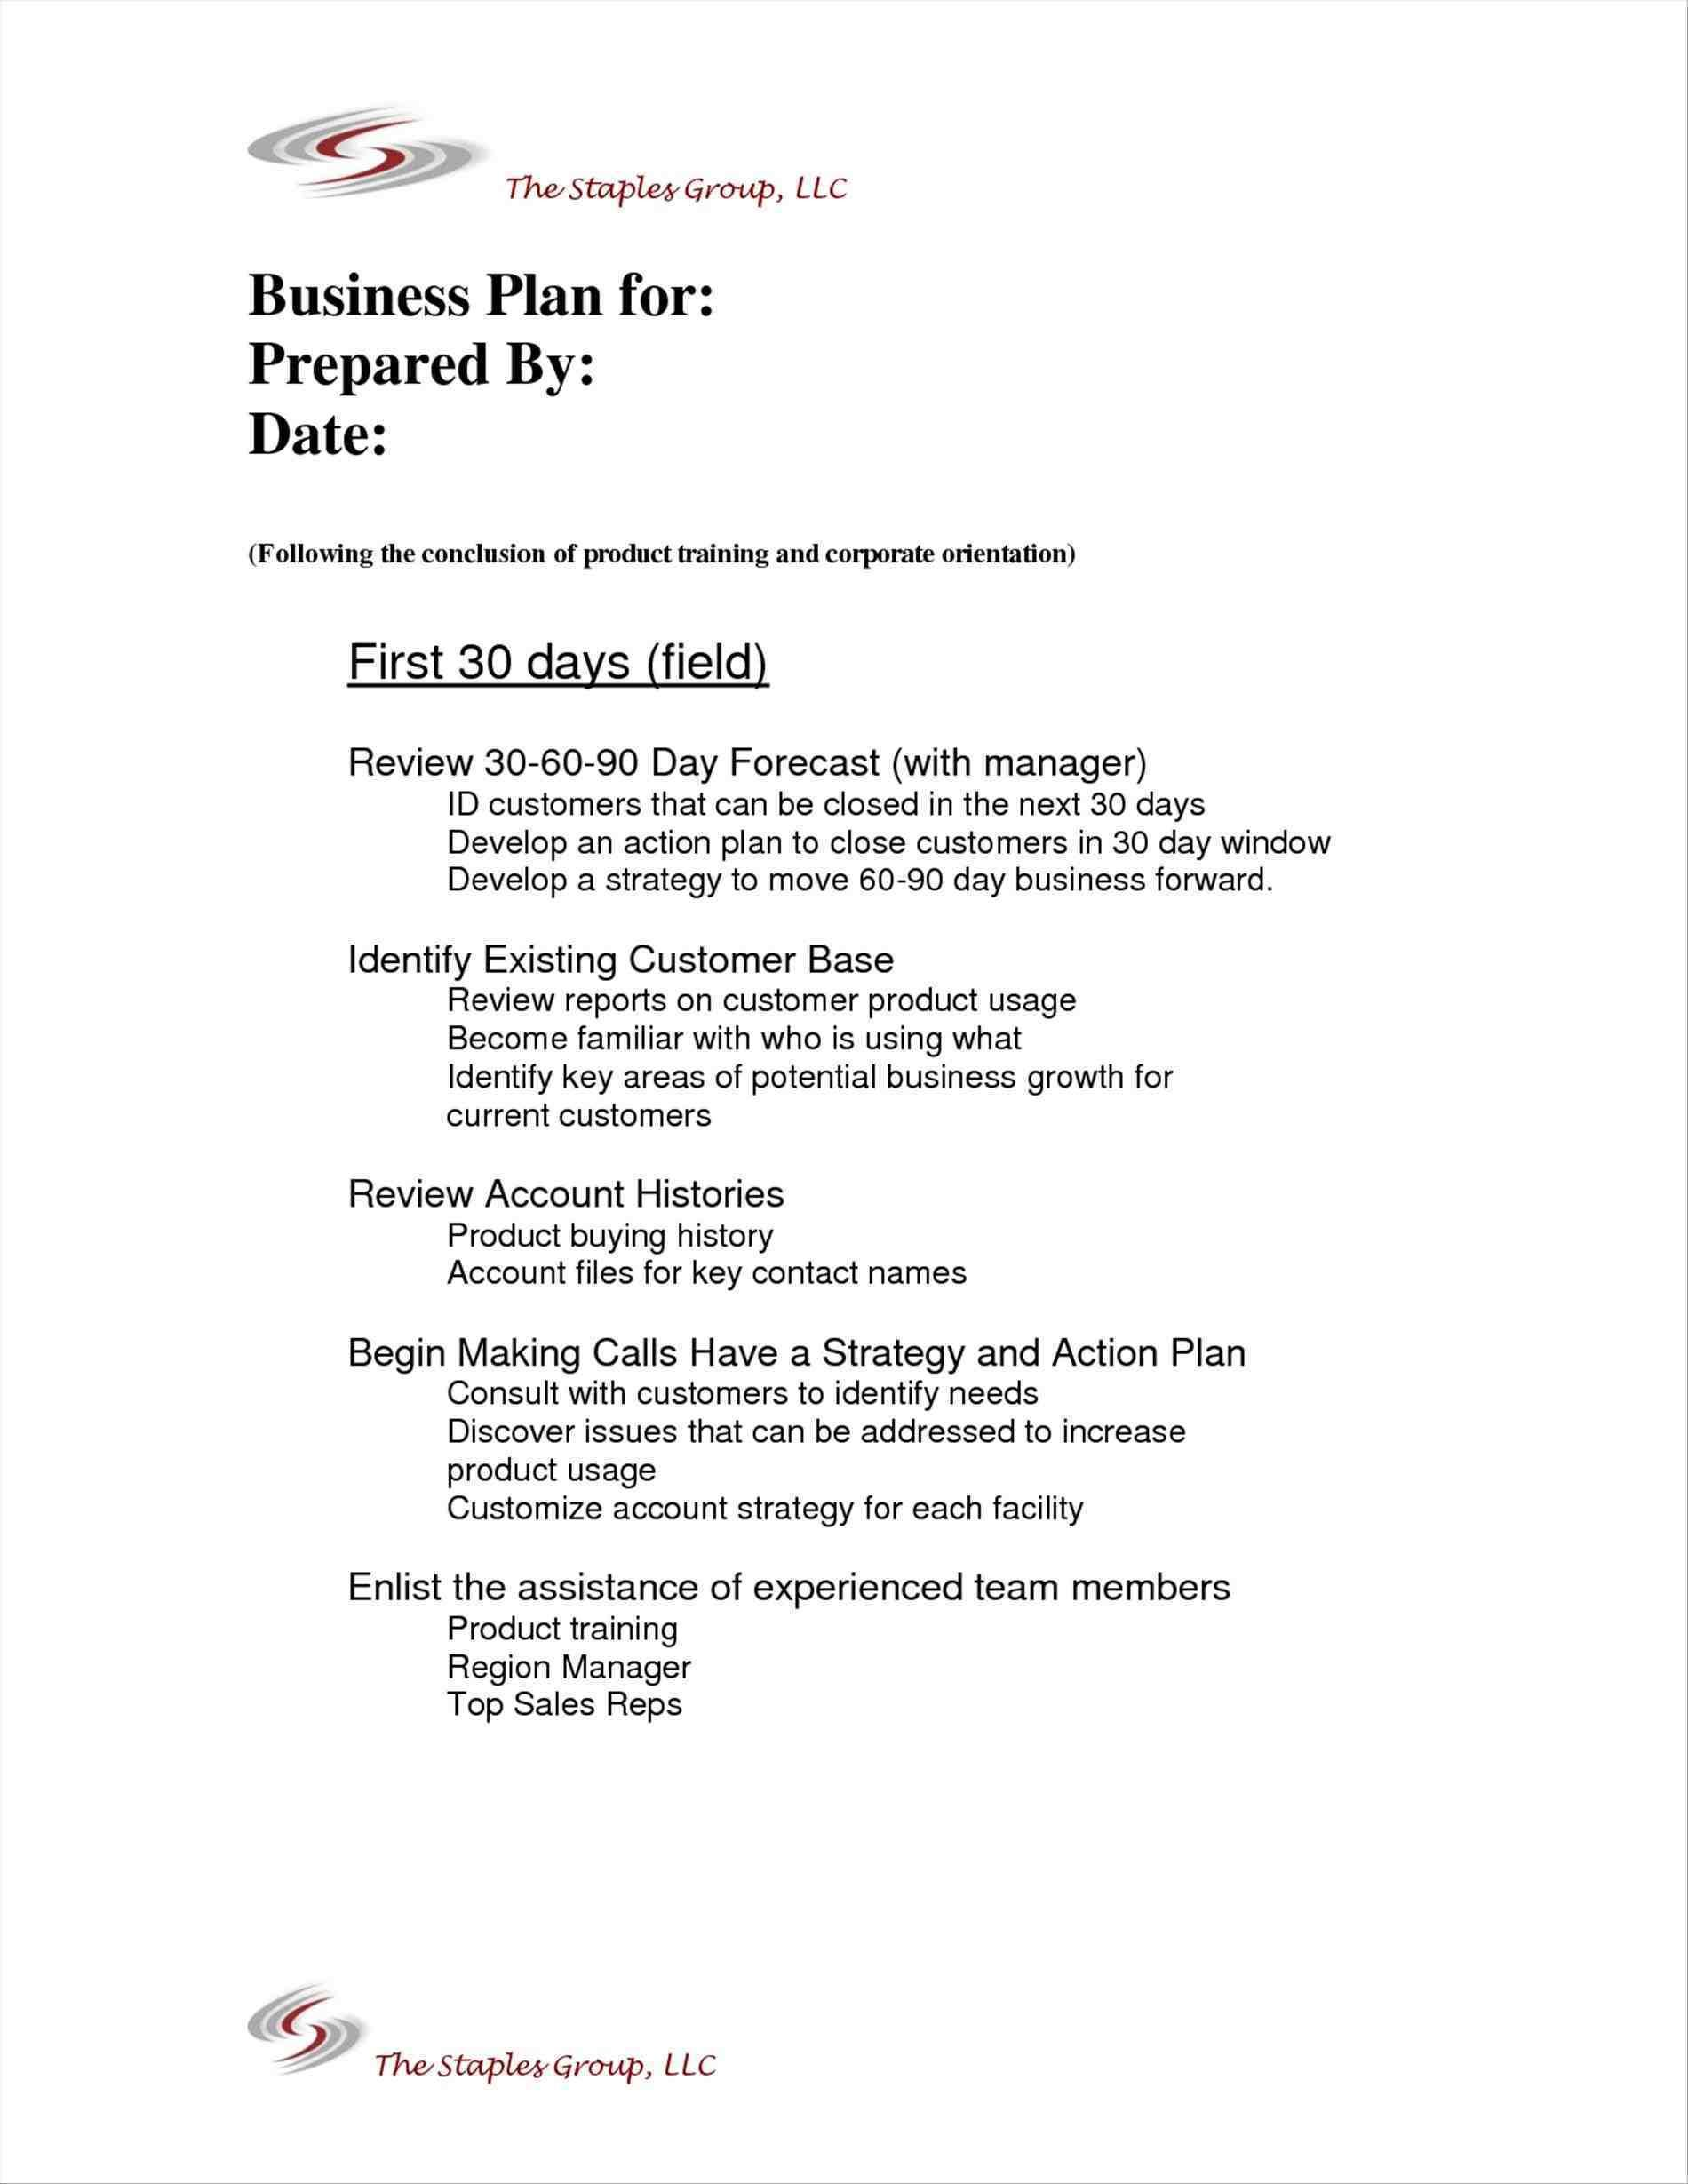 90 day business plan template for interview photos of interview 90 day business plan template for interview photos of interview examples day sales business plan template free for job success genxegg fbccfo Image collections